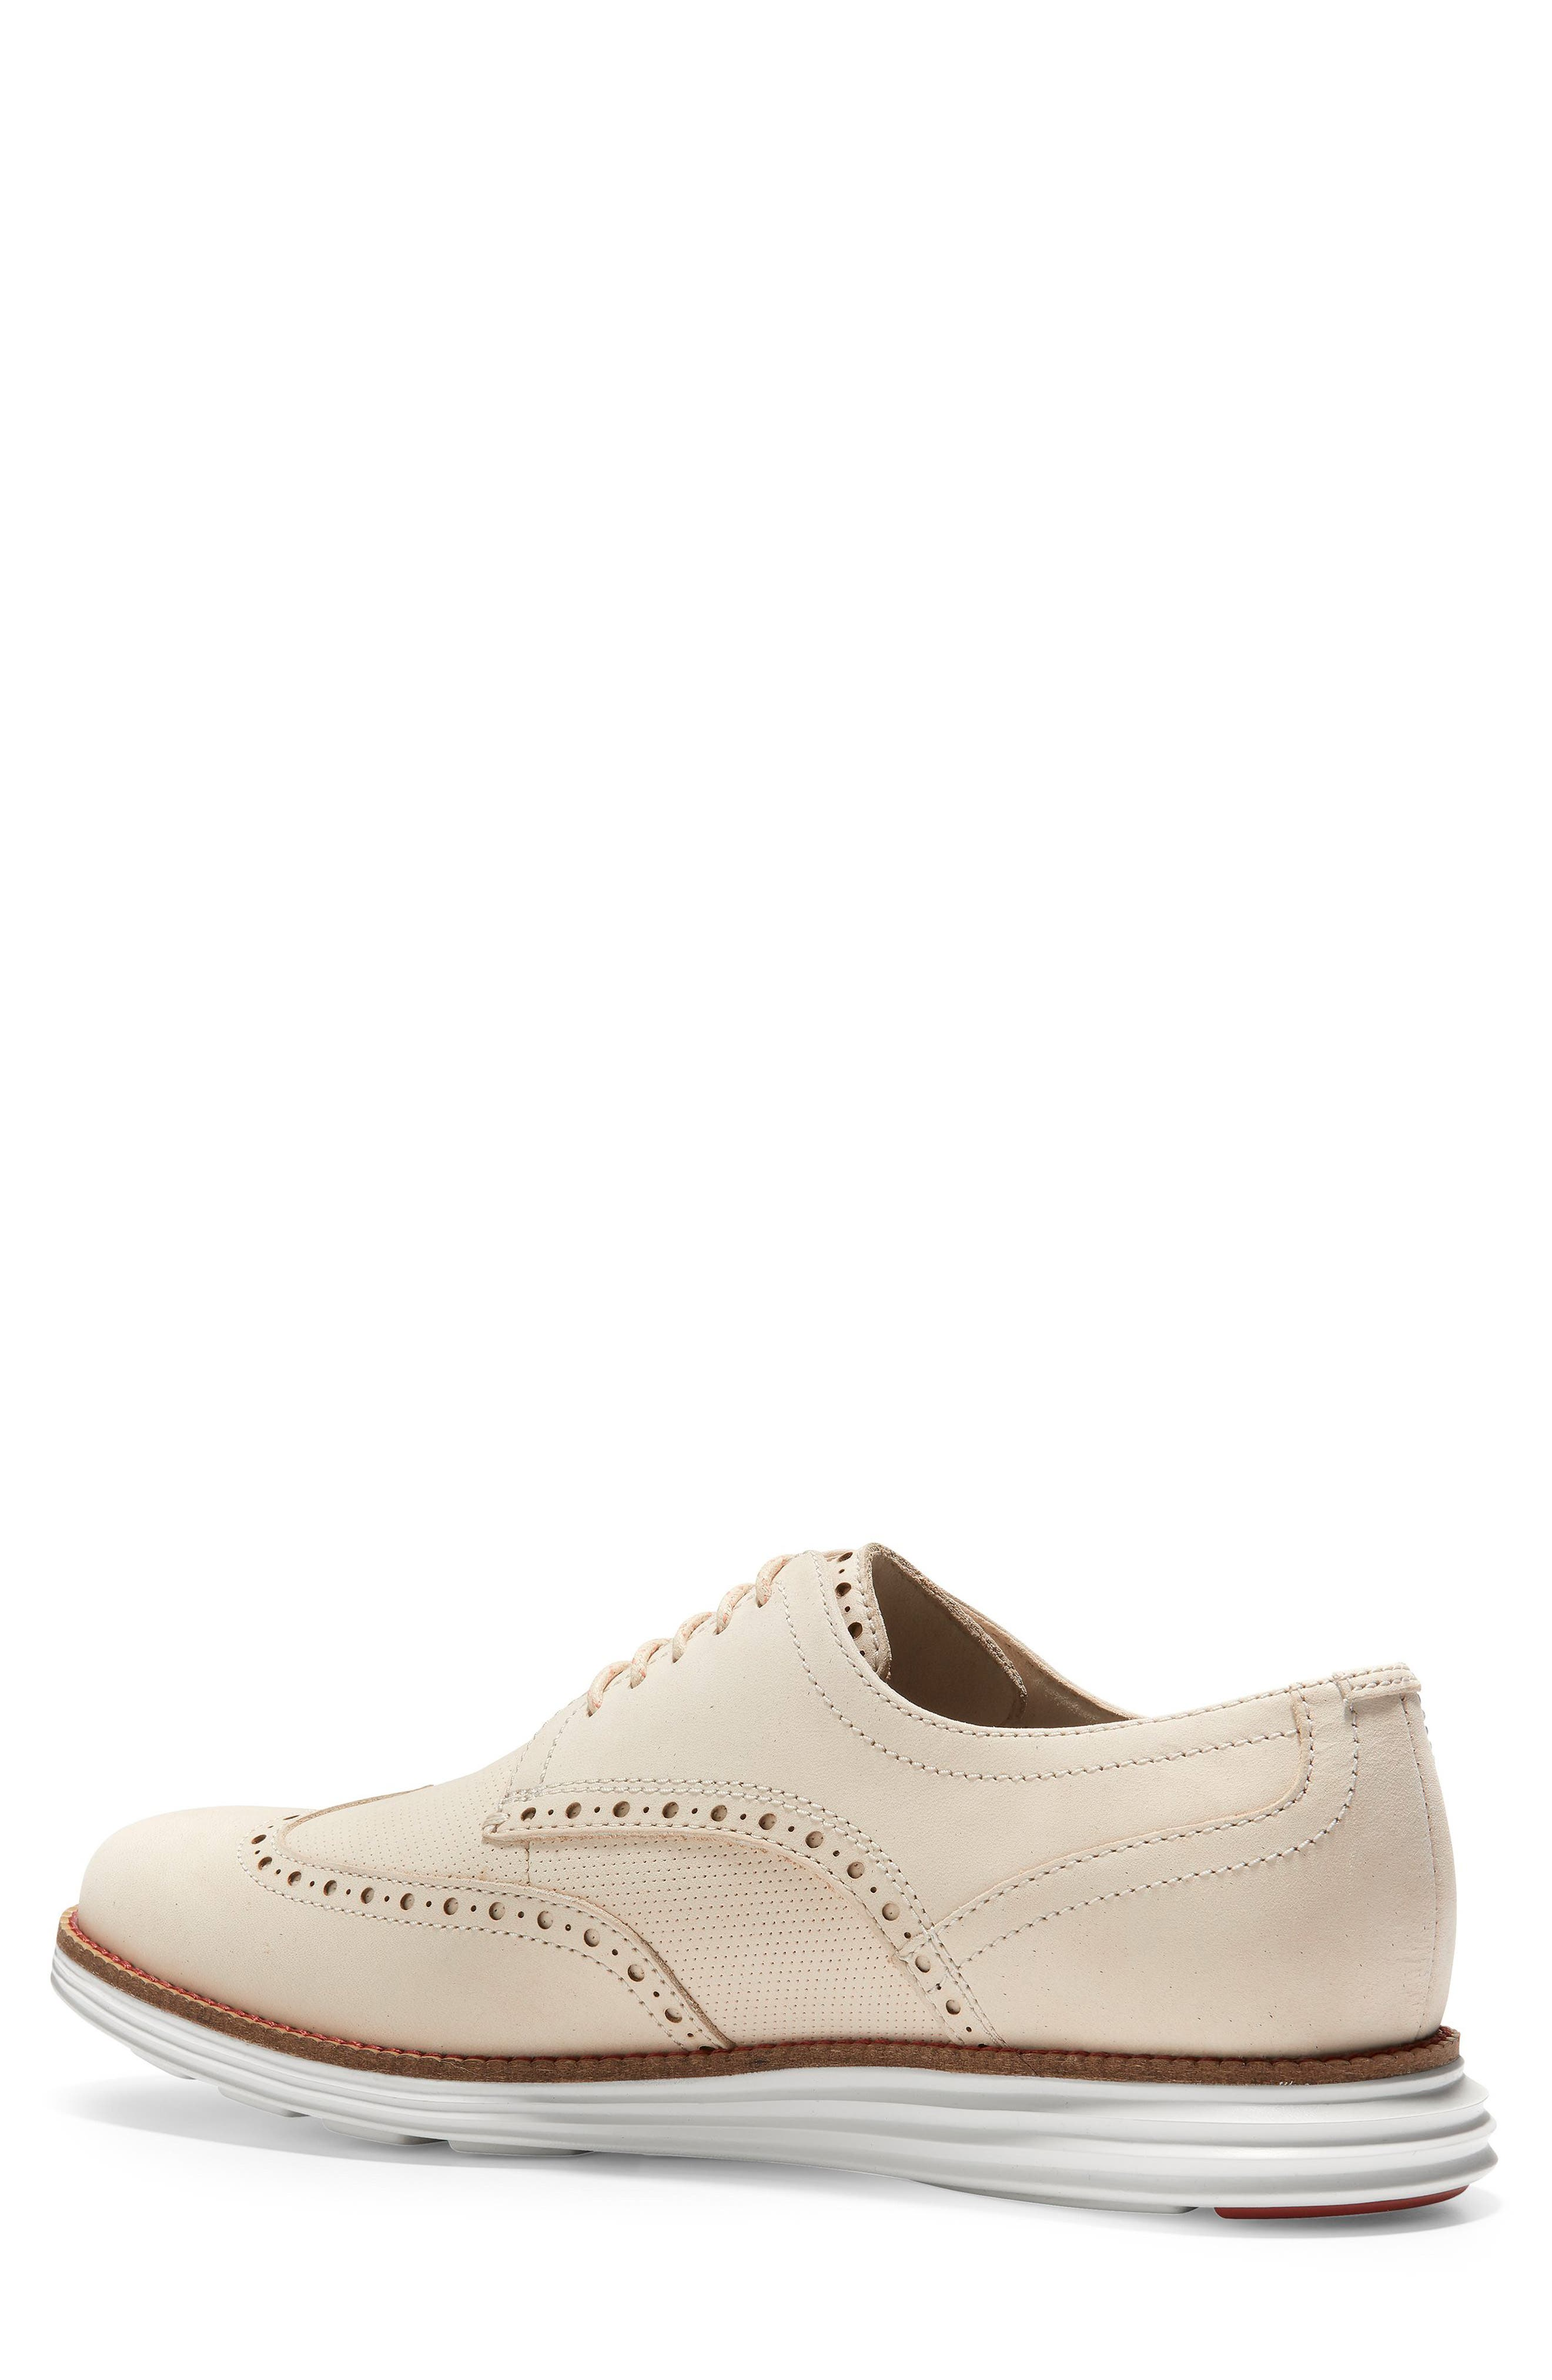 COLE HAAN, Original Grand Wingtip, Alternate thumbnail 2, color, SAND/ OPTIC WHITE NUBUCK